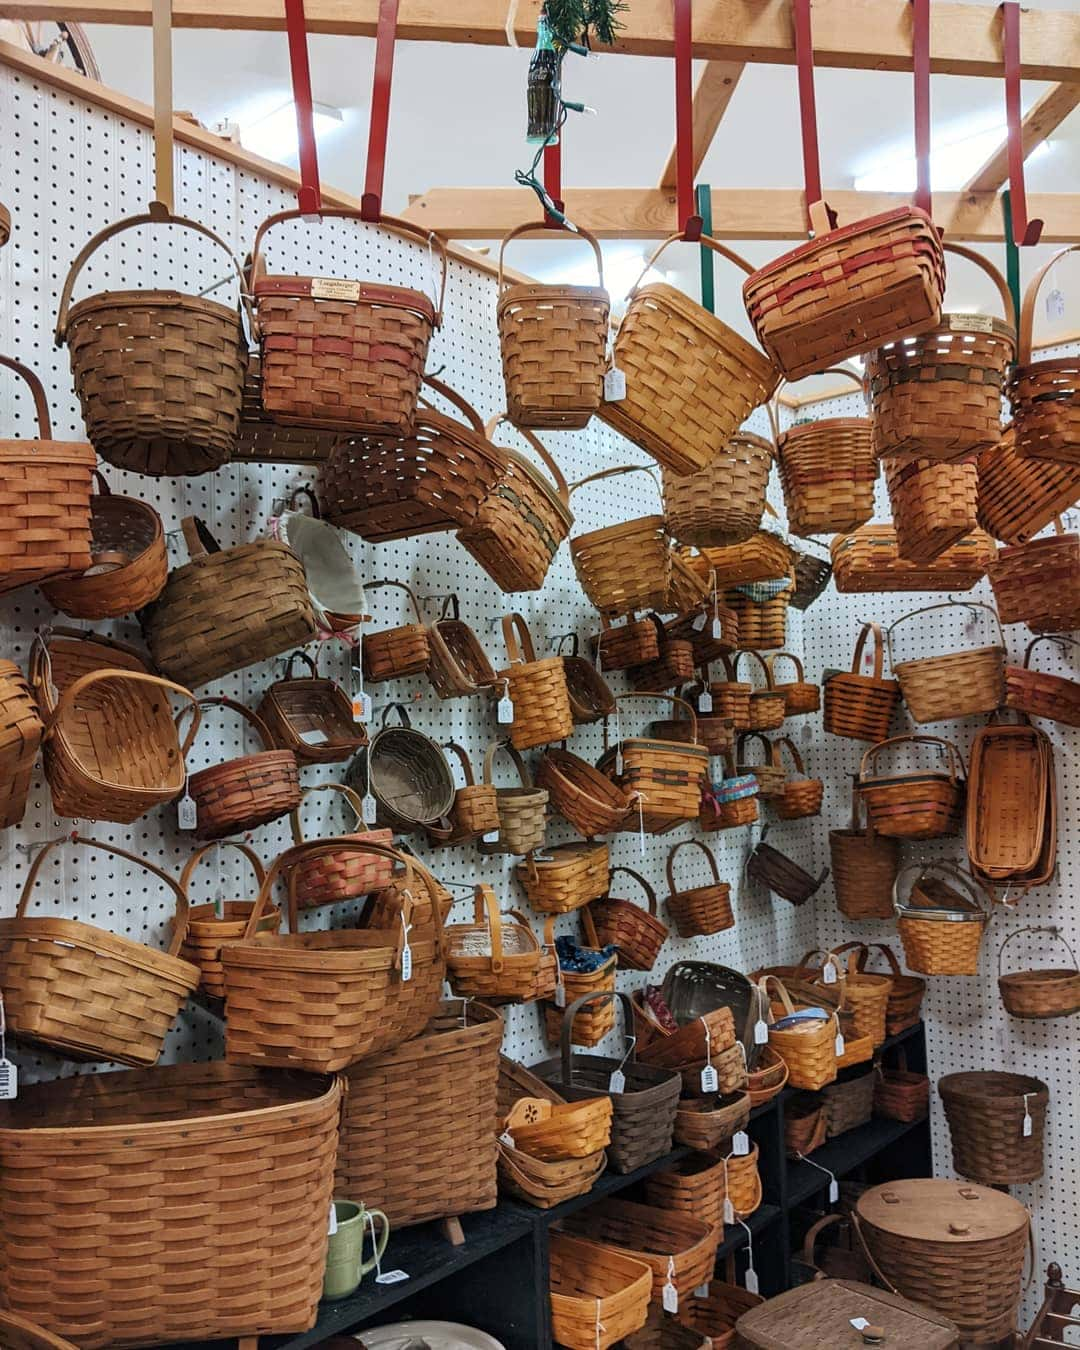 Wall of baskets in an antique mall in Berlin, Ohio